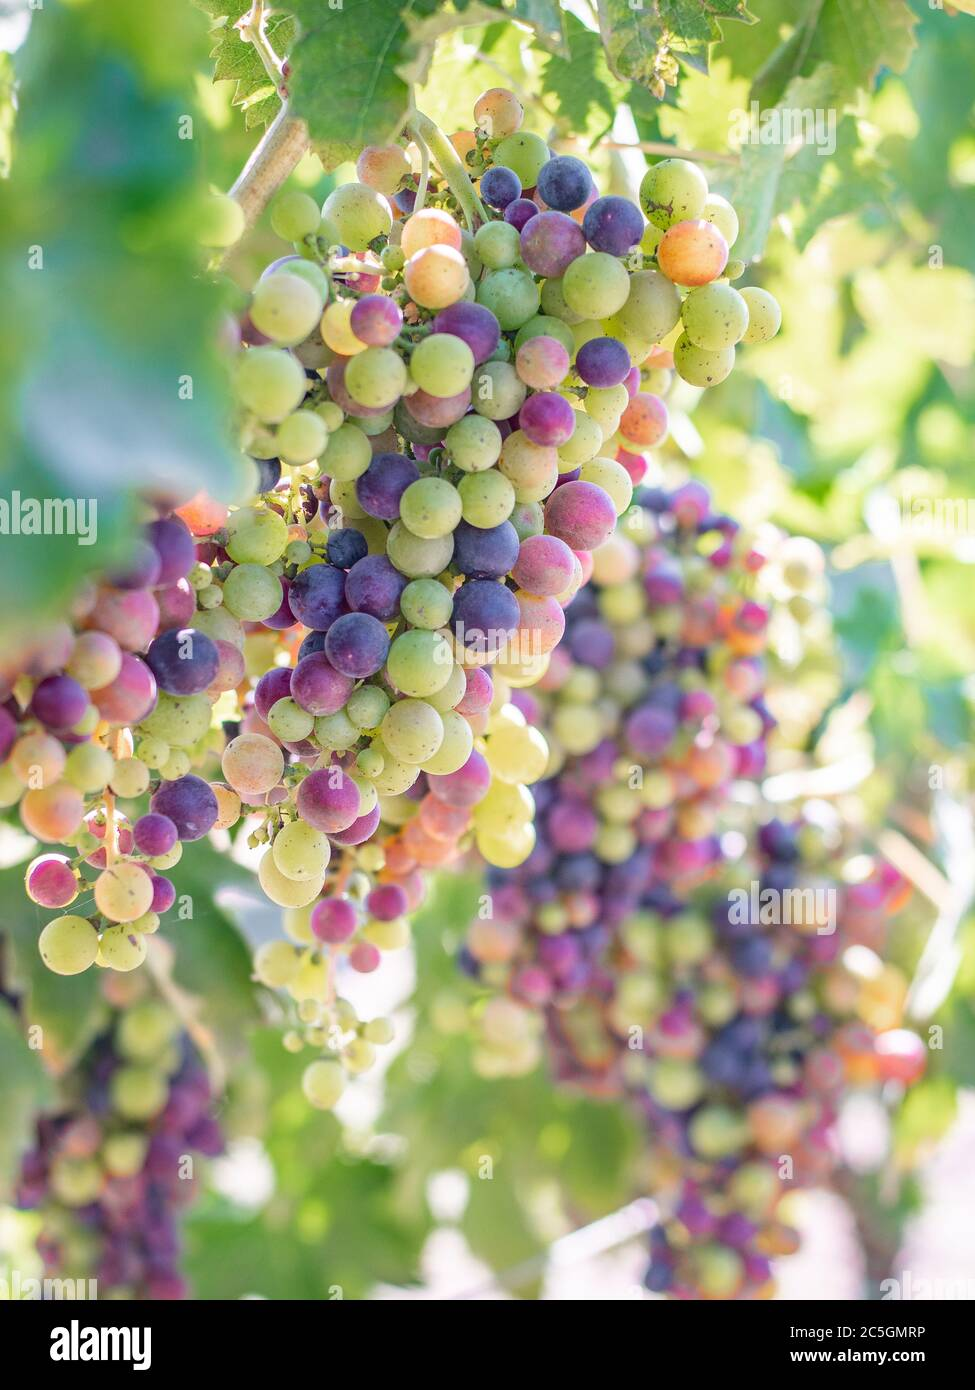 Red wine grapes on the vine nearing ripeness in veraison in Dry Creek Valley Sonoma County Wine Country California in late summer  Stock Photo